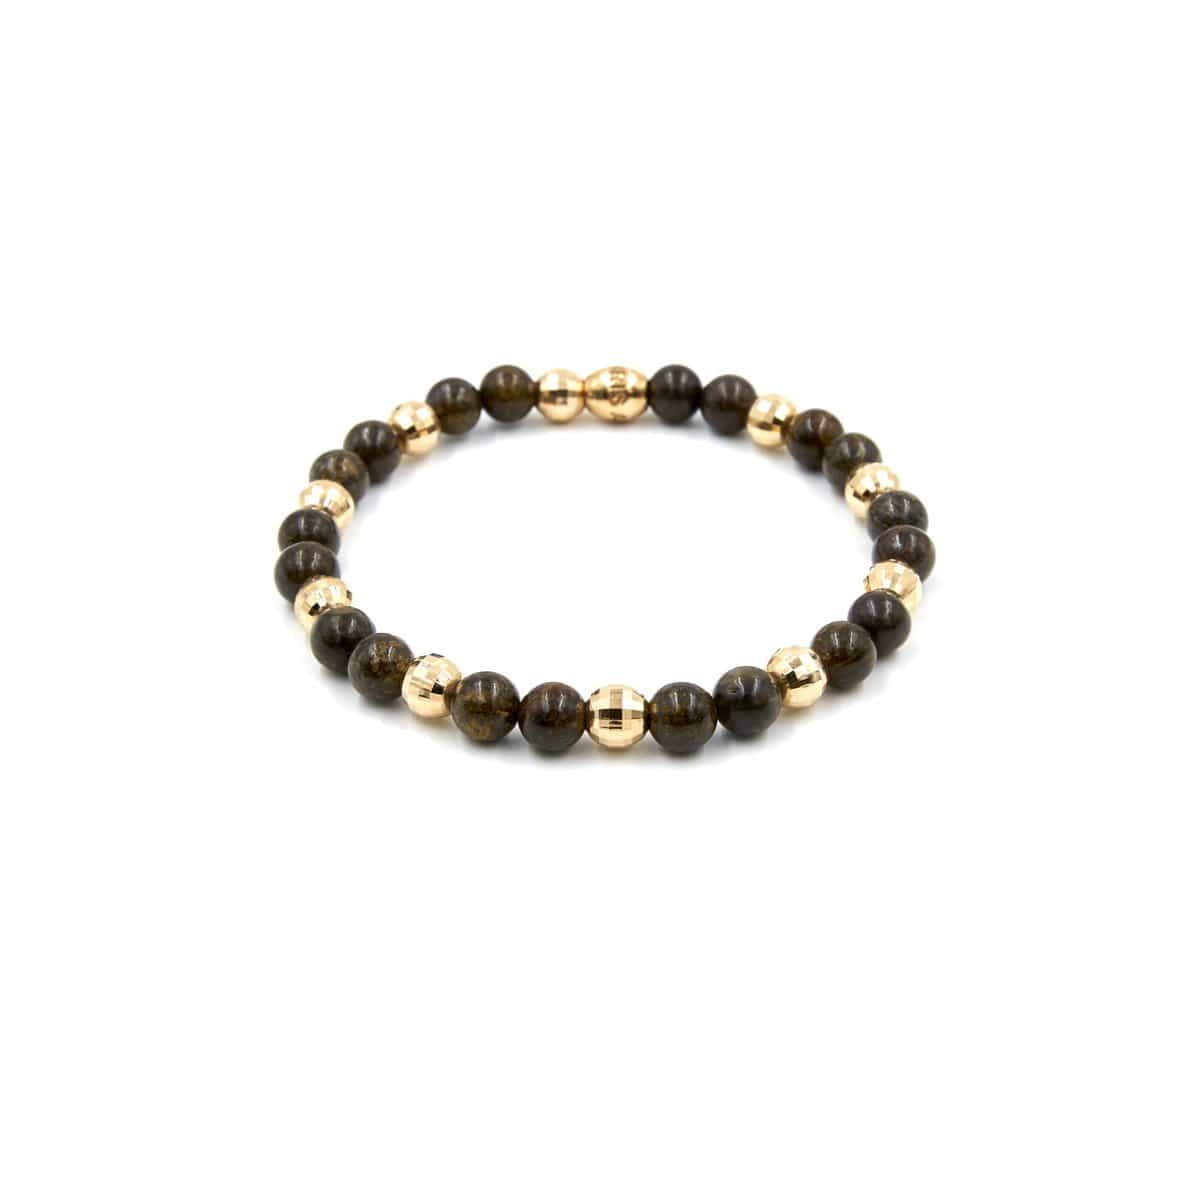 GOLD AND BEAD  BRACELET - Chris Aire Fine Jewelry & Timepieces